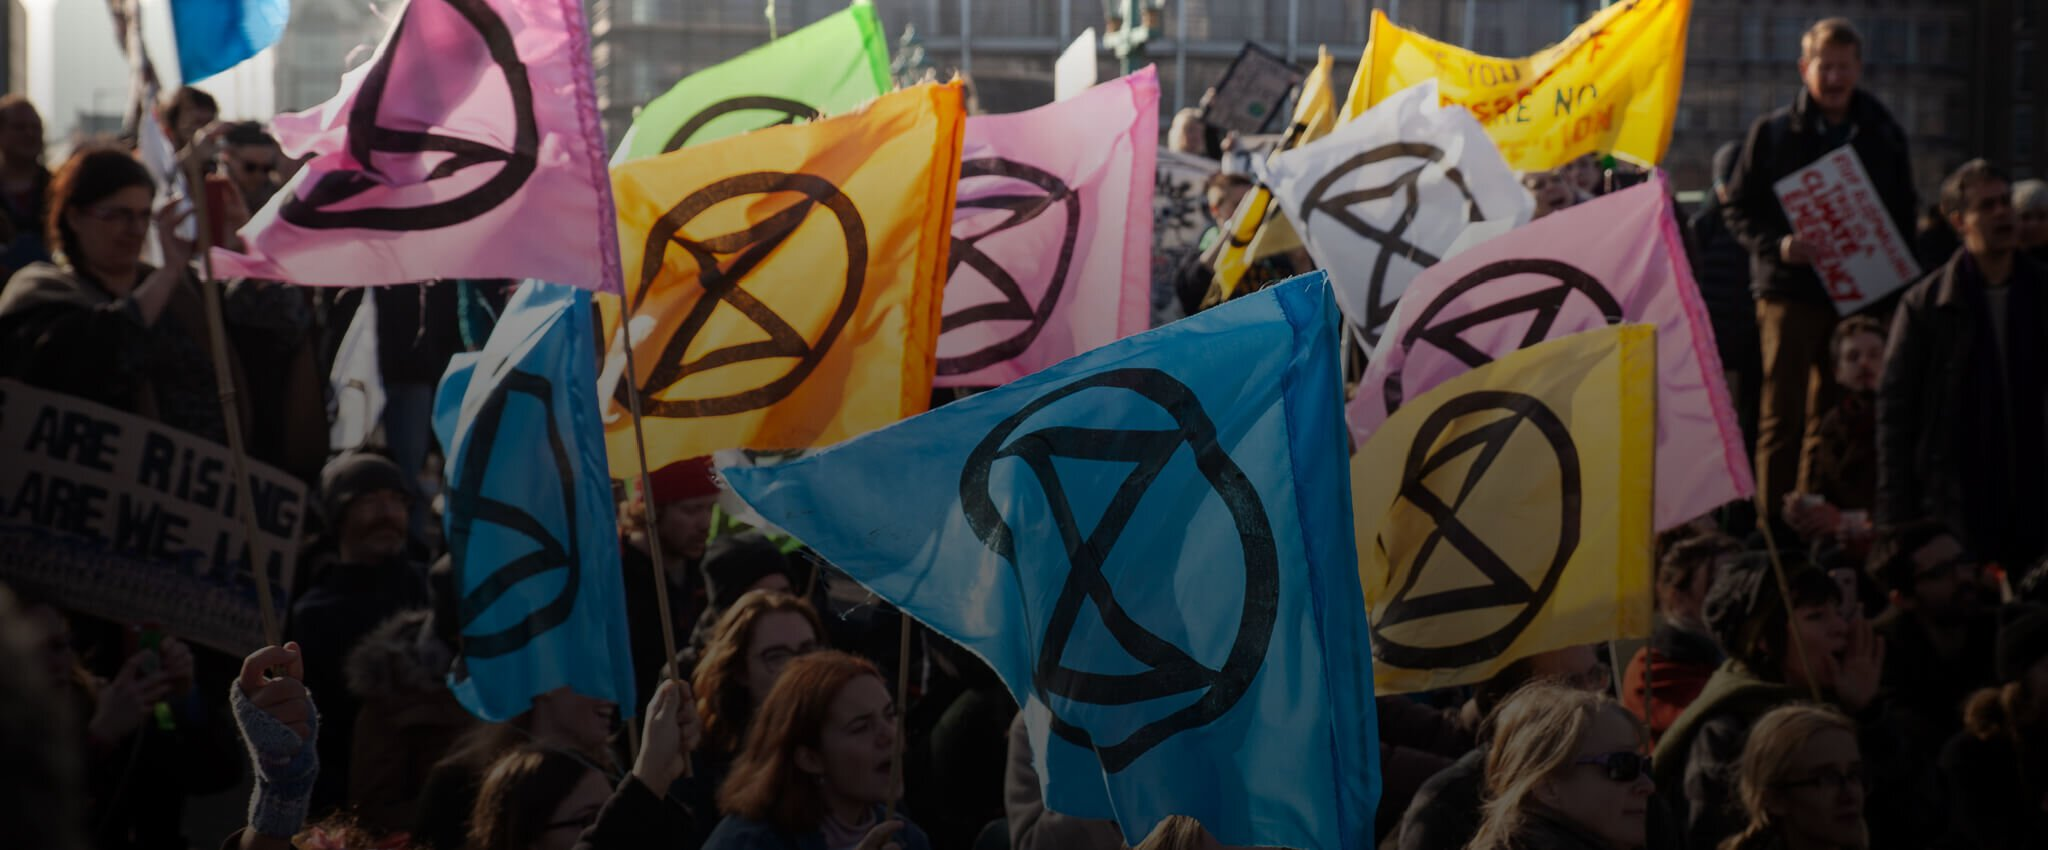 people protesting with colorful extinction rebellion flags